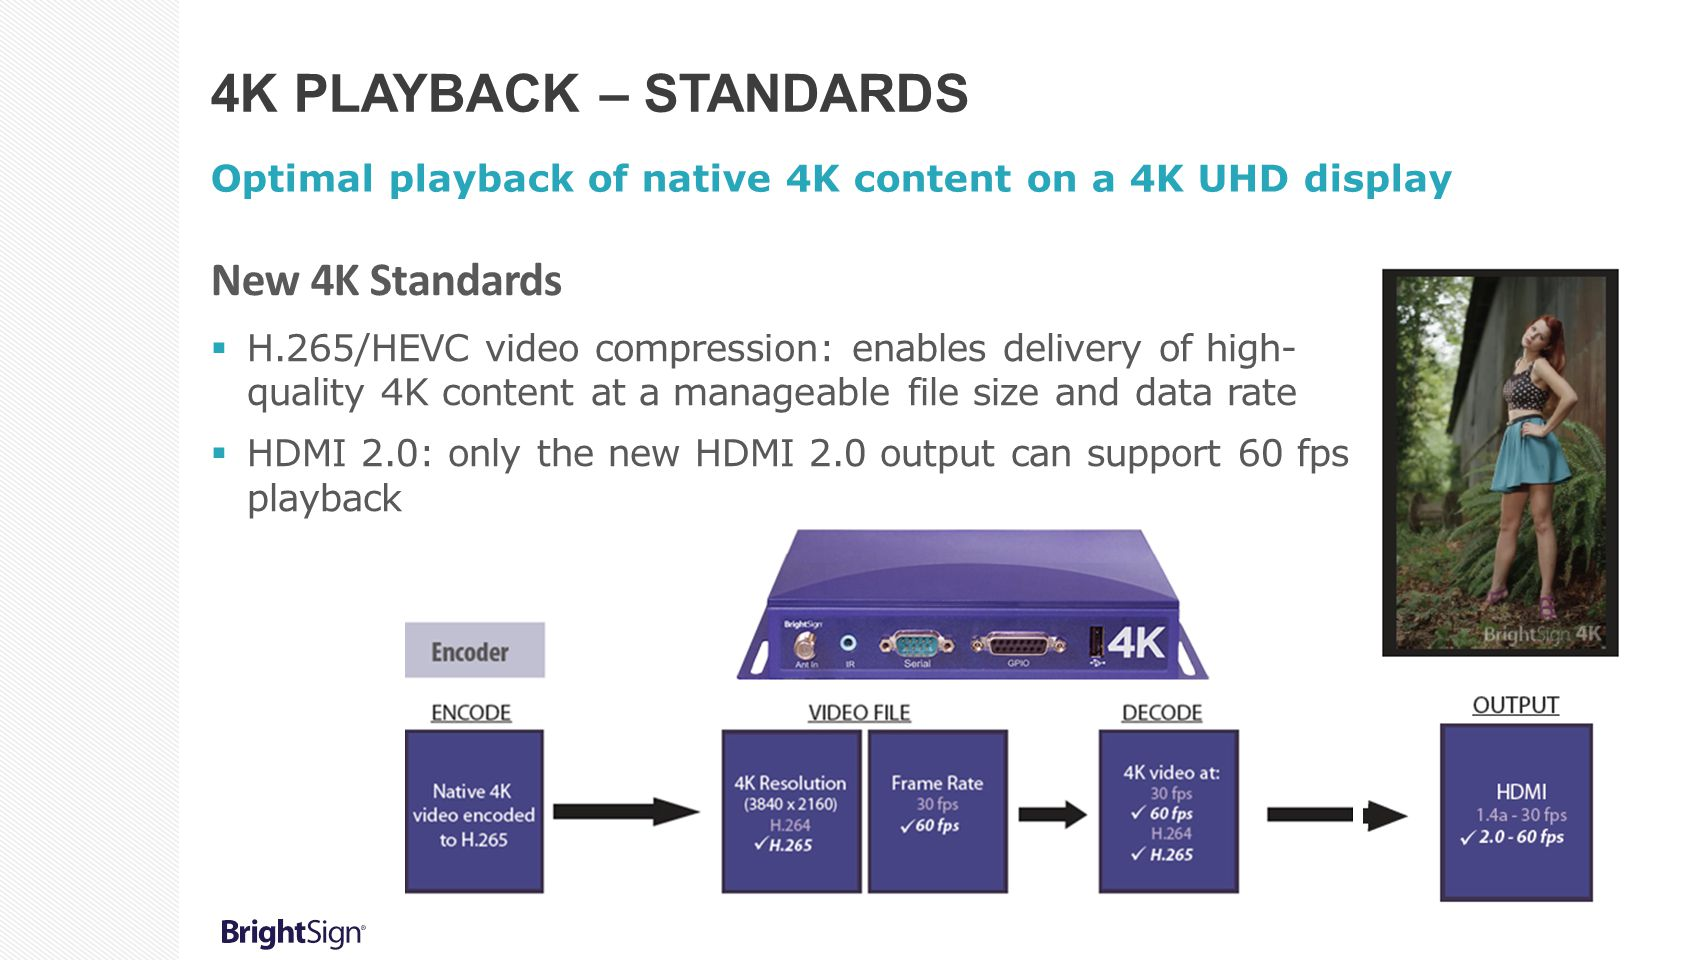 4K PLAYBACK – ENCODING Process to deliver native 4K video @ 60fps Video Encoding  The native 4K (3840x2160) video file should be encoded to the new compression format H.265 in order to playback at 60 fps  H.265 HEVC (high efficiency video codec) enables delivery of high-quality 4K content at about the same file size and data rate as HD content at H.264